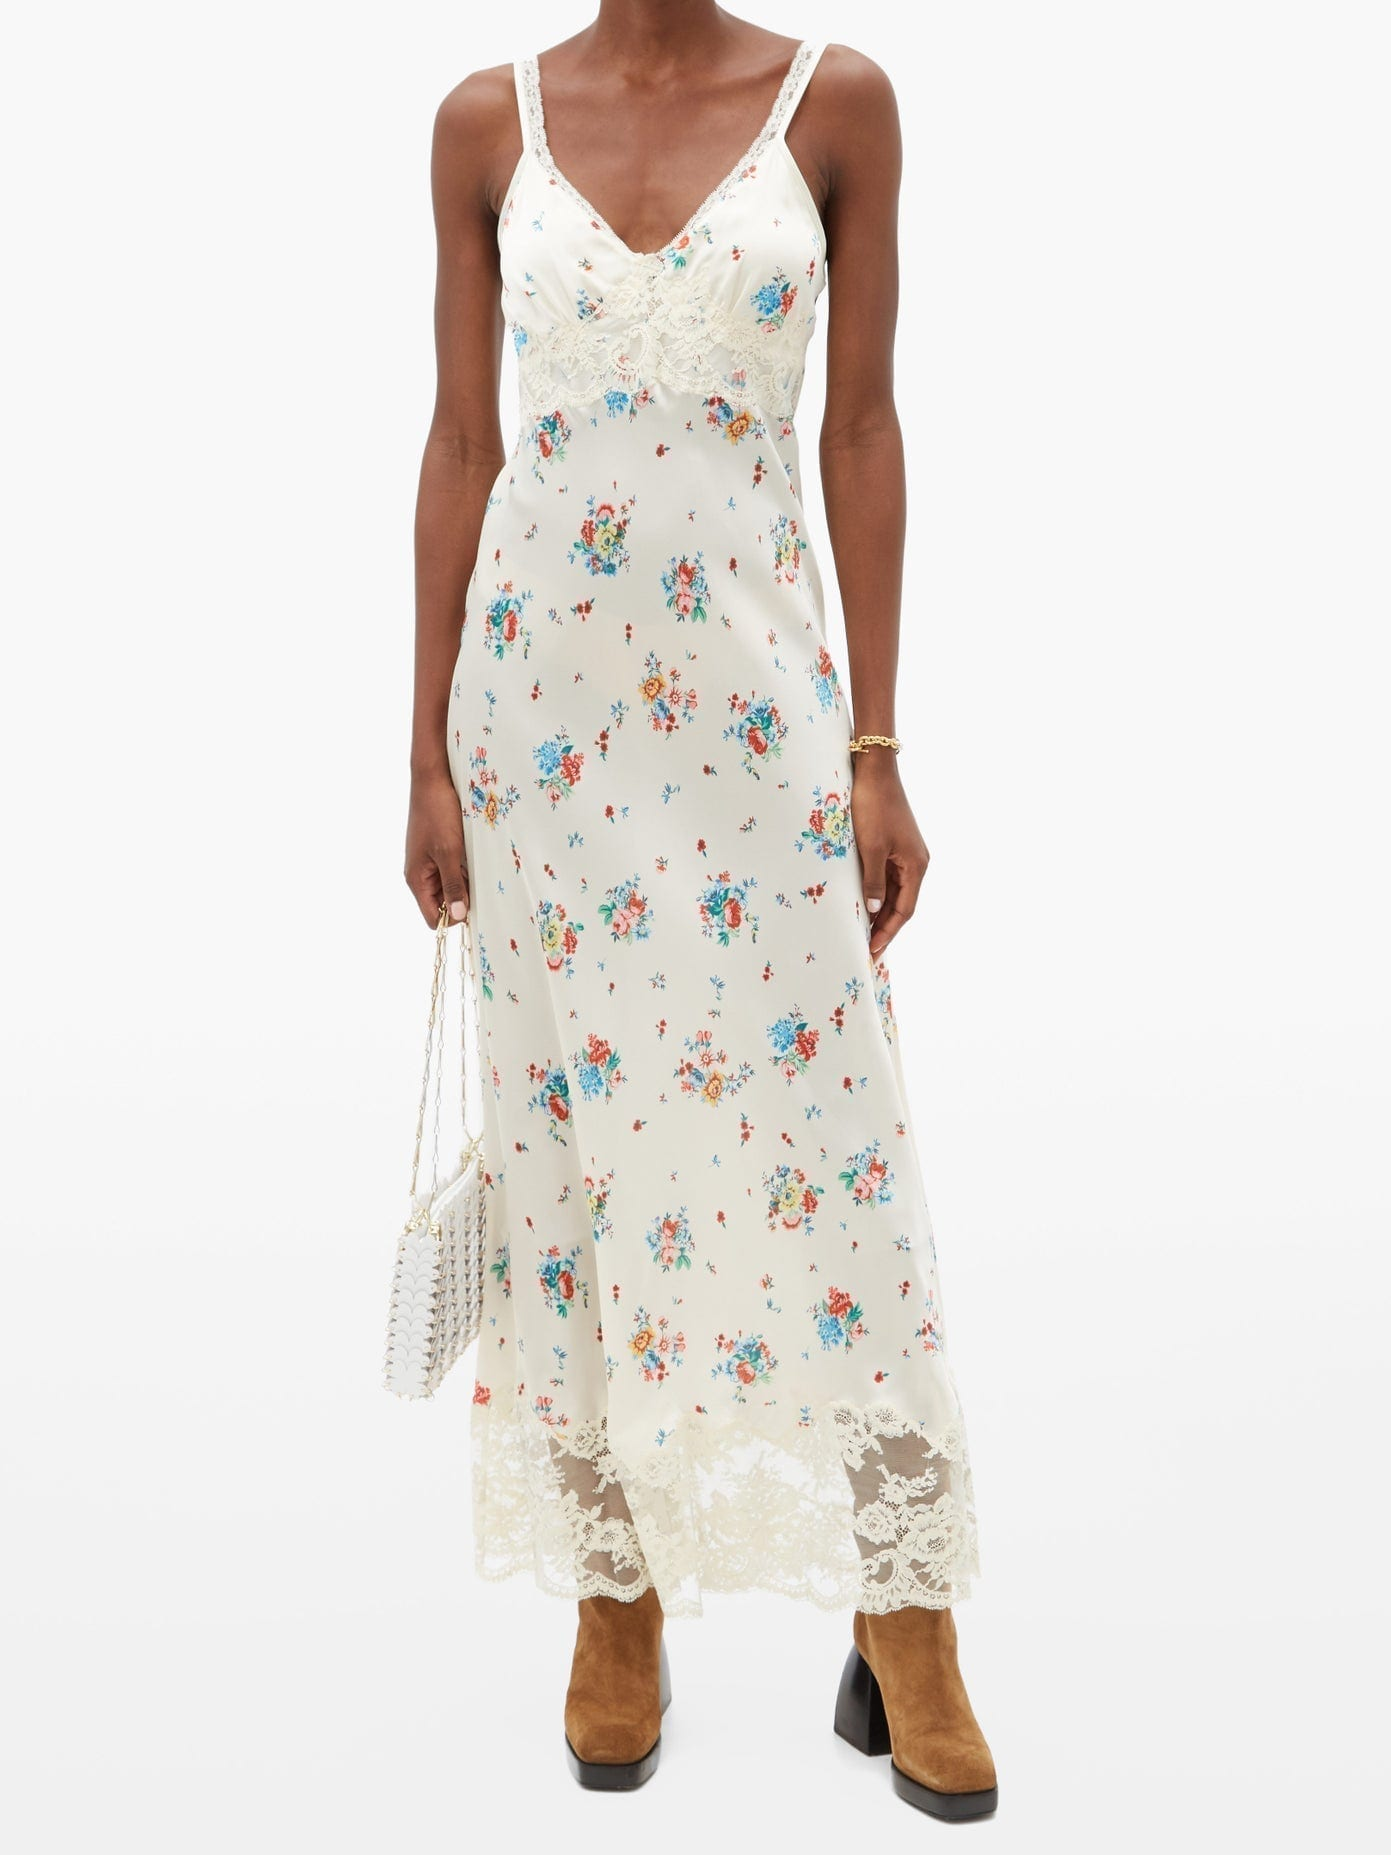 PACO RABANNE Lace-trim Floral-print Satin Slip Dress